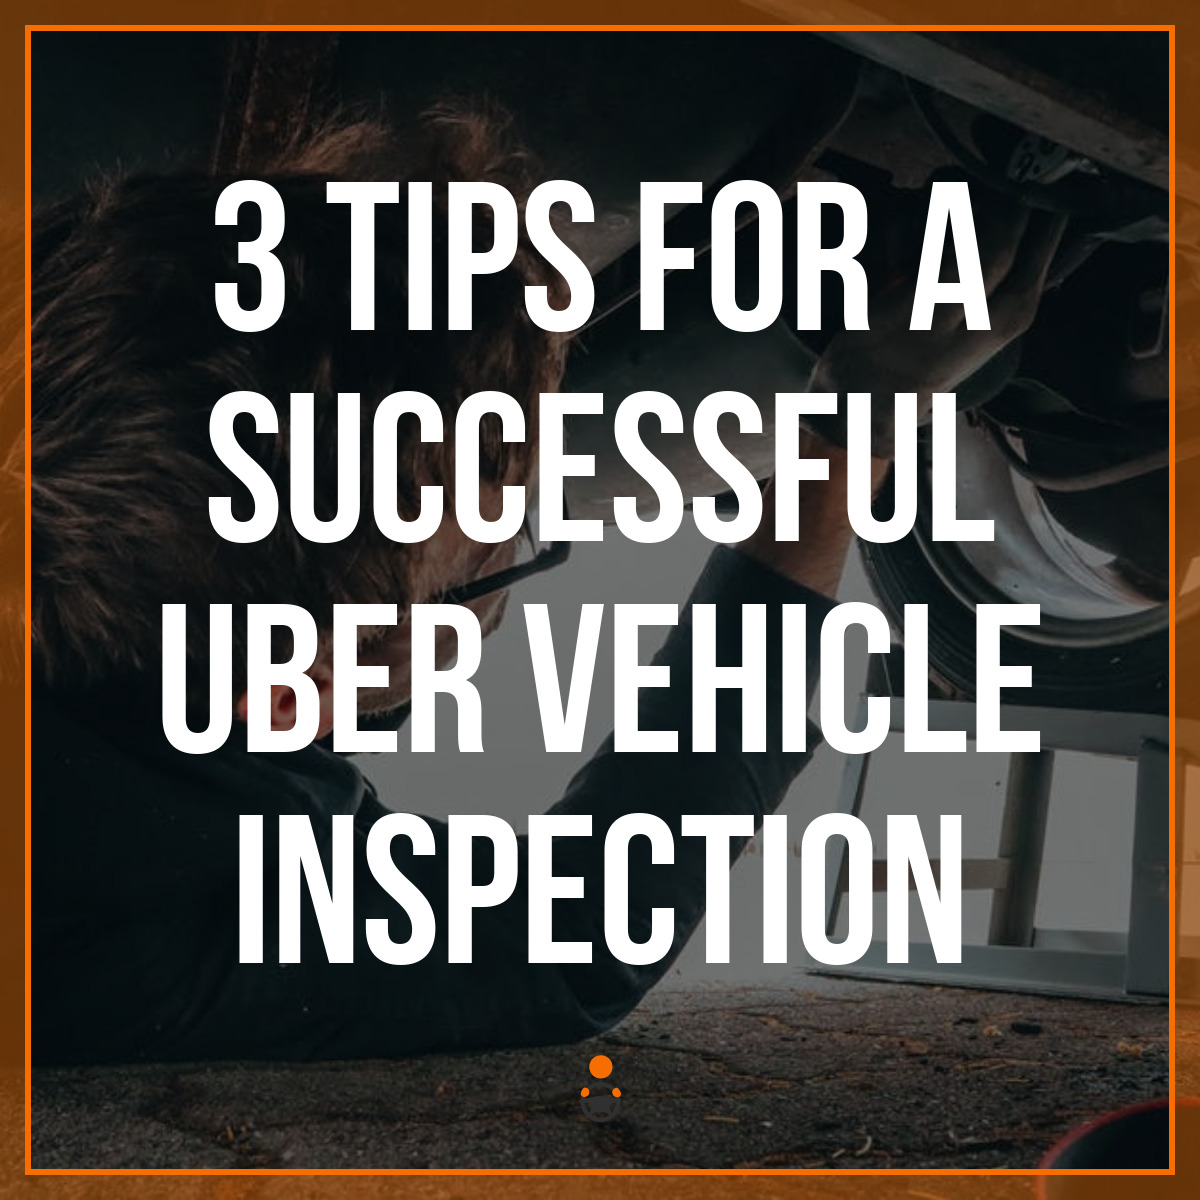 Uber Vehicle Inspection – What To Expect & Tips For Success